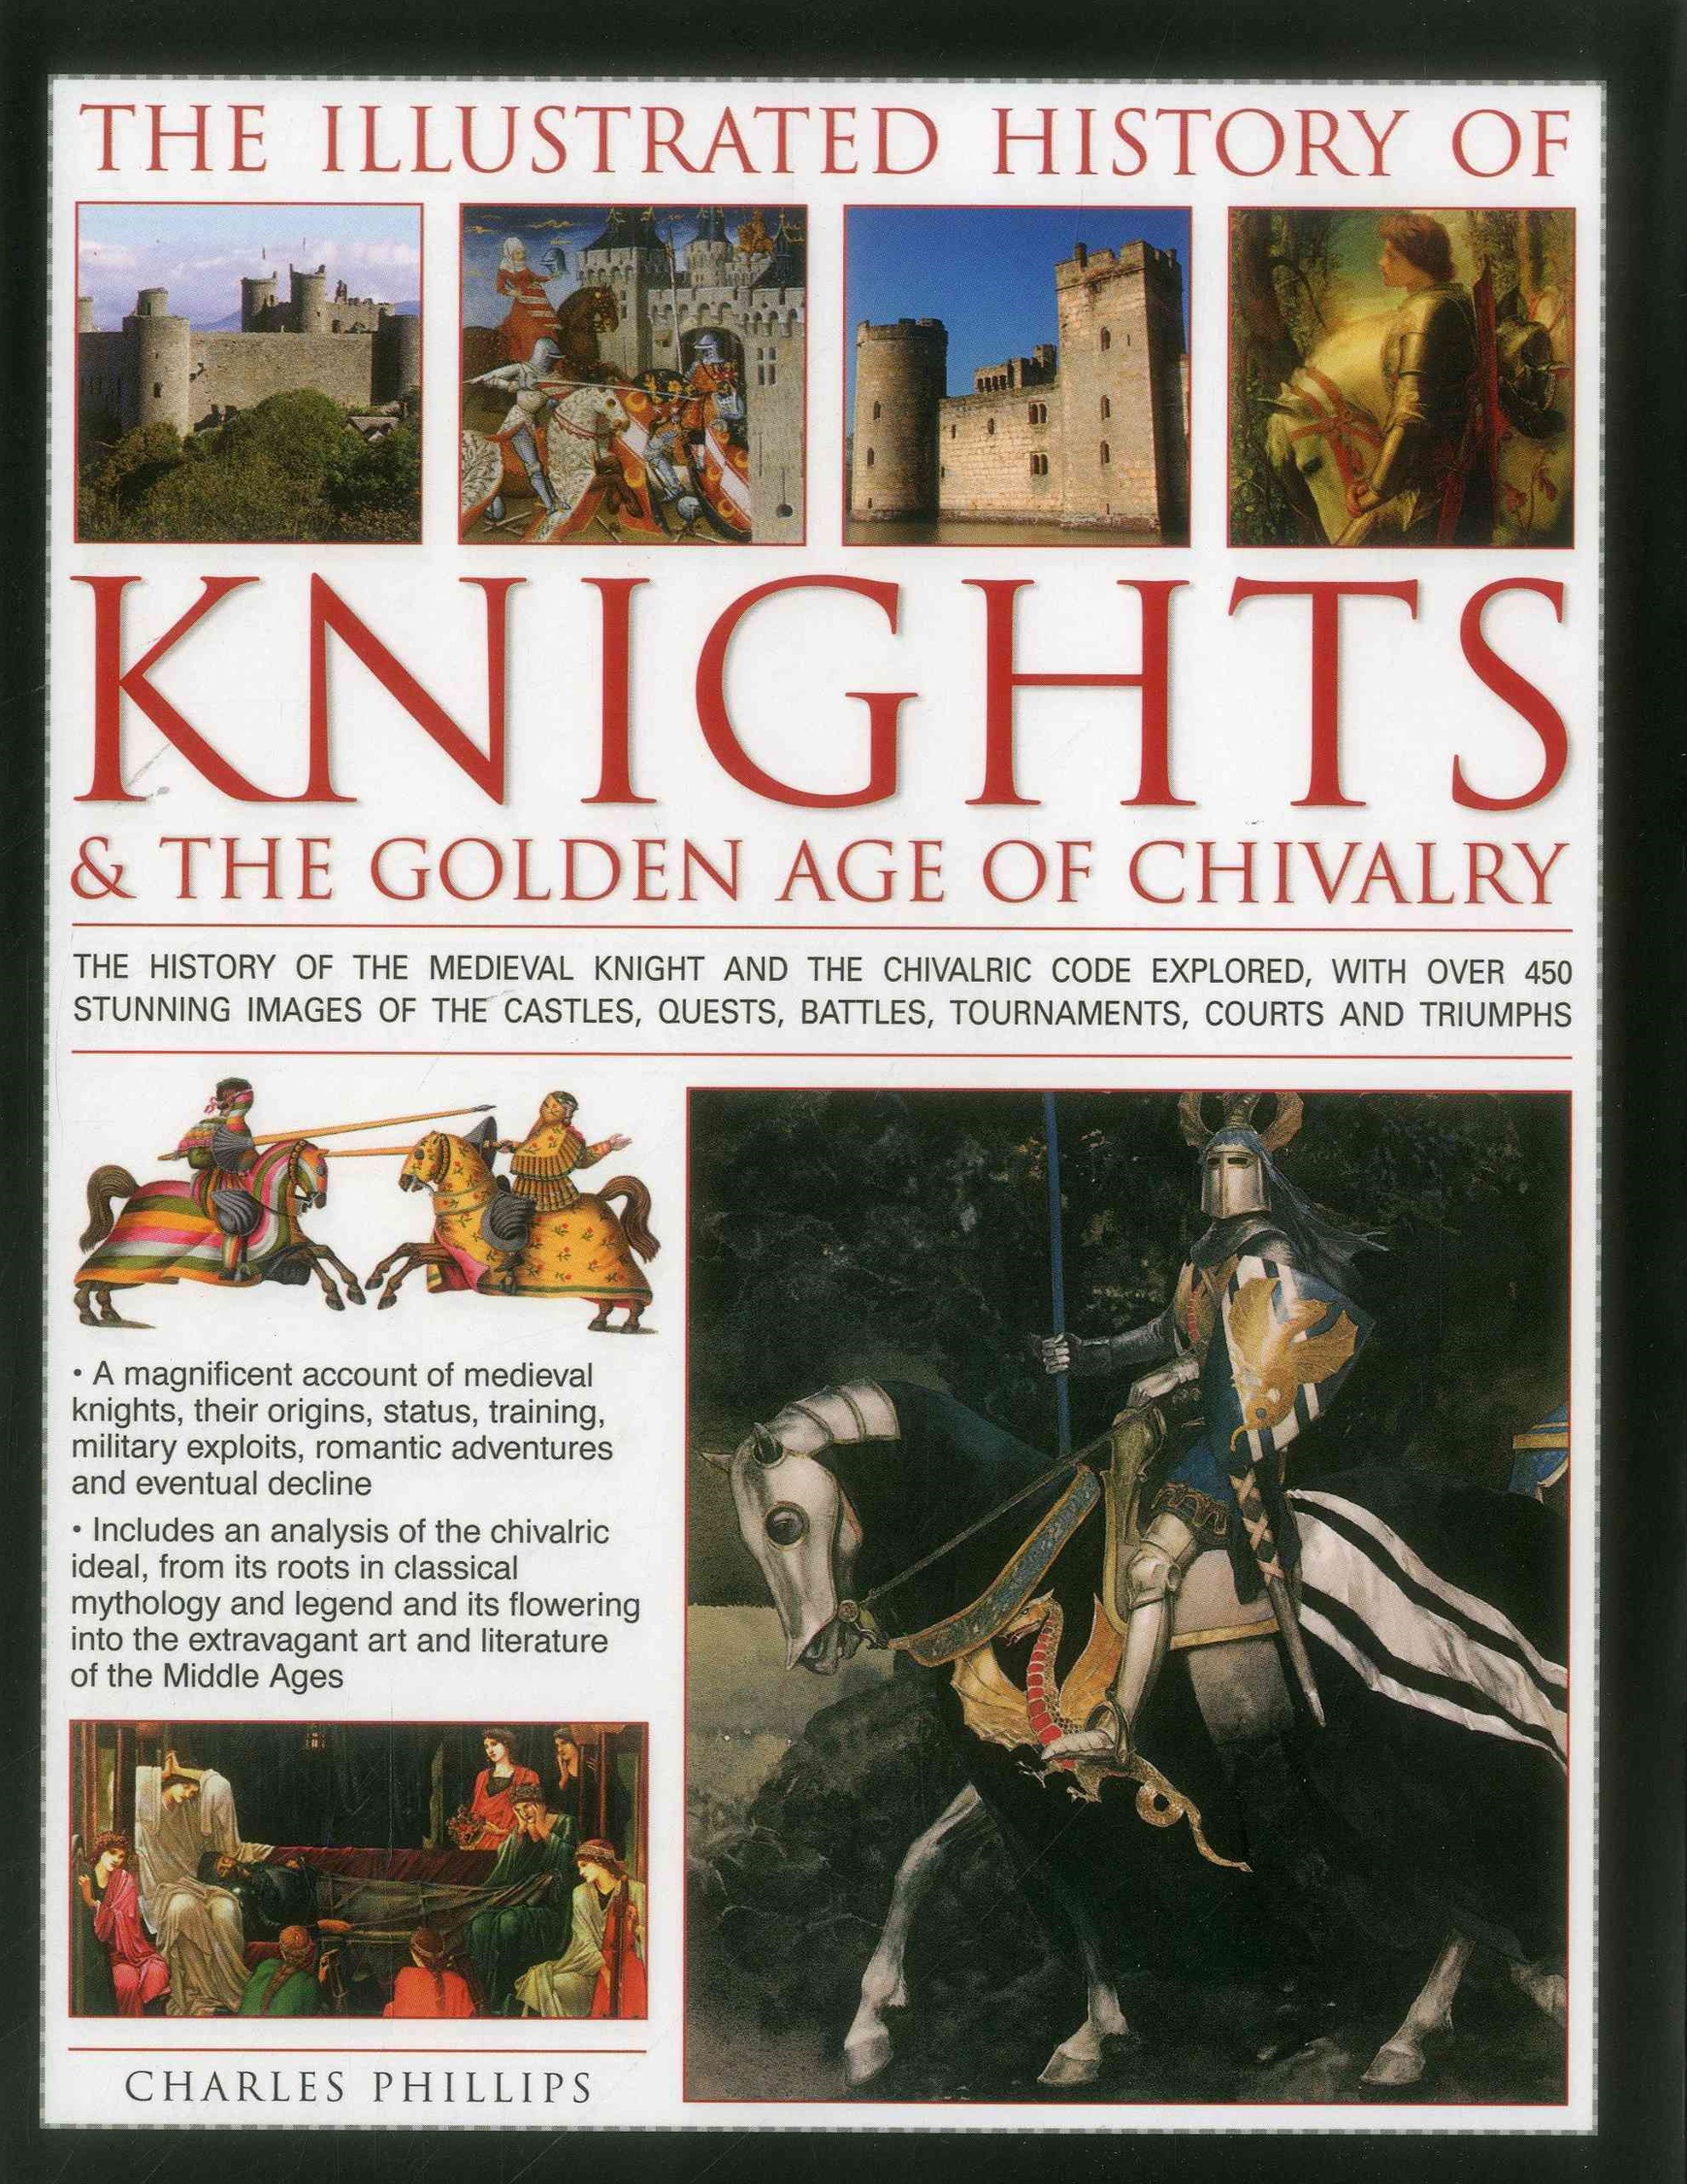 Illustrated History of Knights & the Golden Age of Chivalry